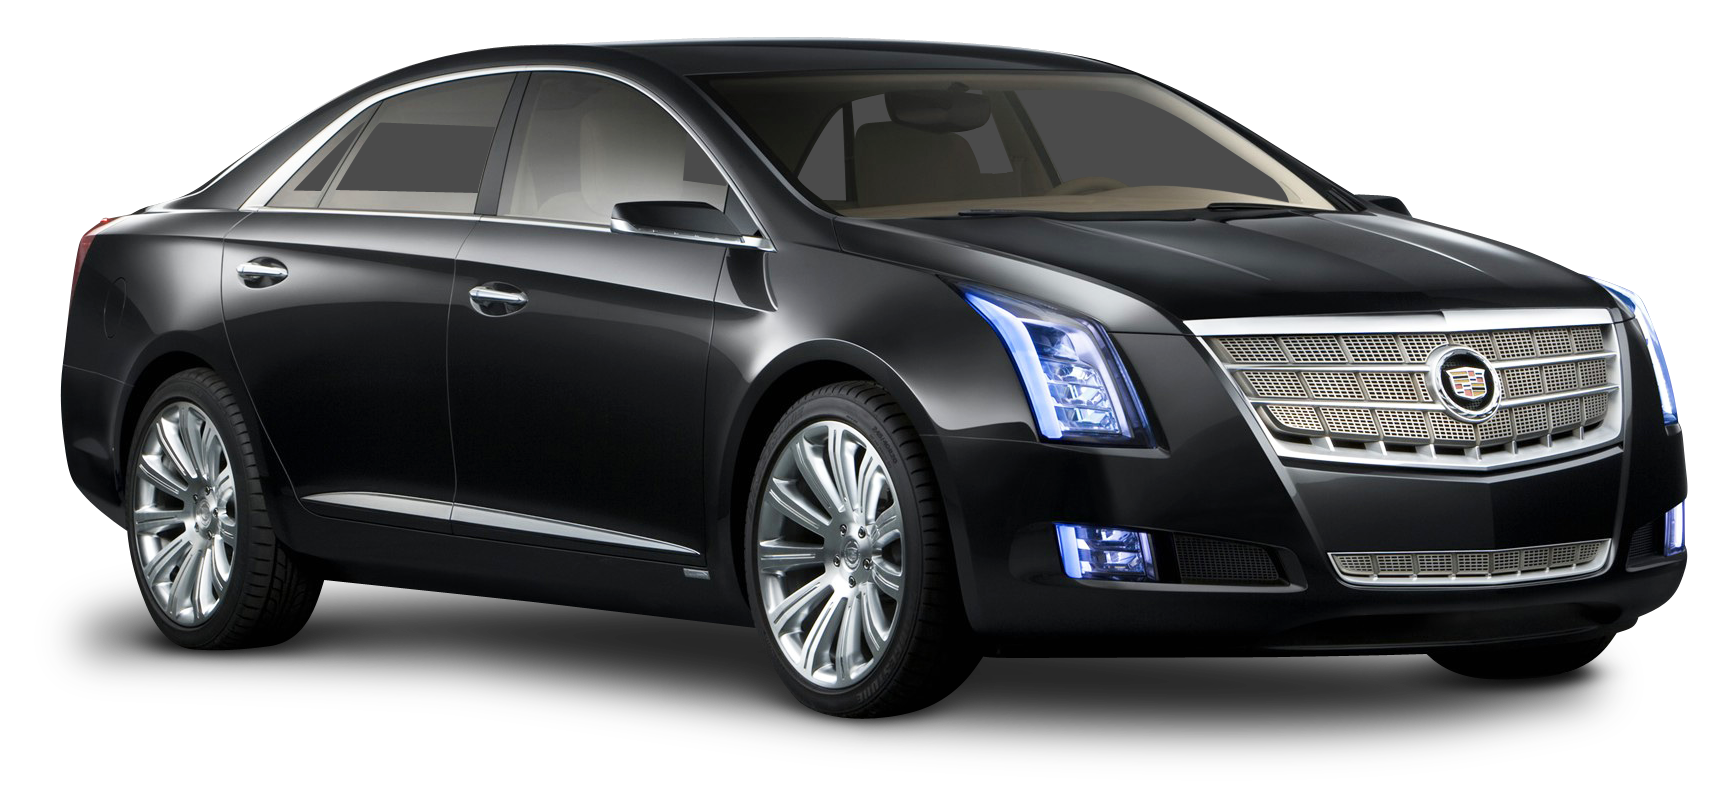 Cadillac Transparent Background 22848